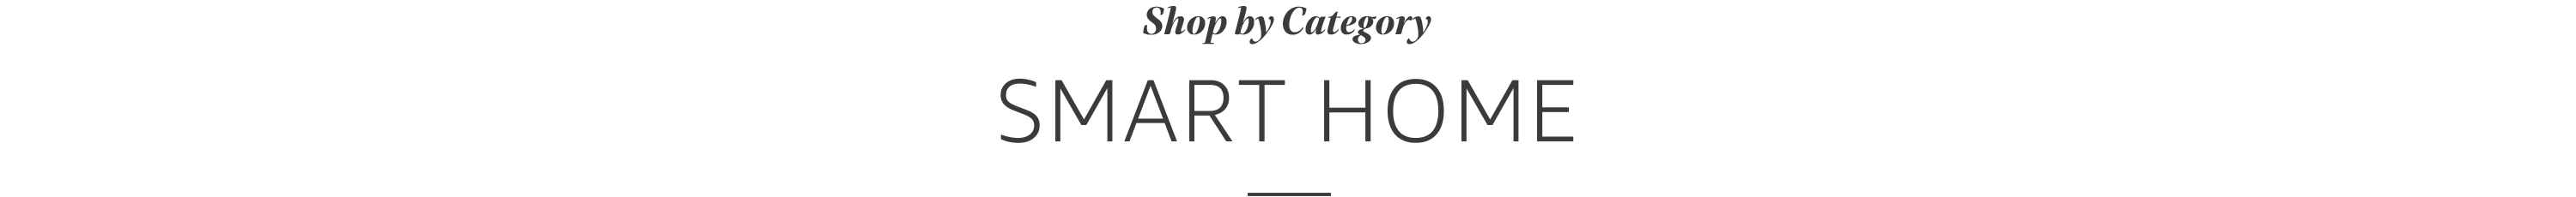 Shop Smart Home Categories